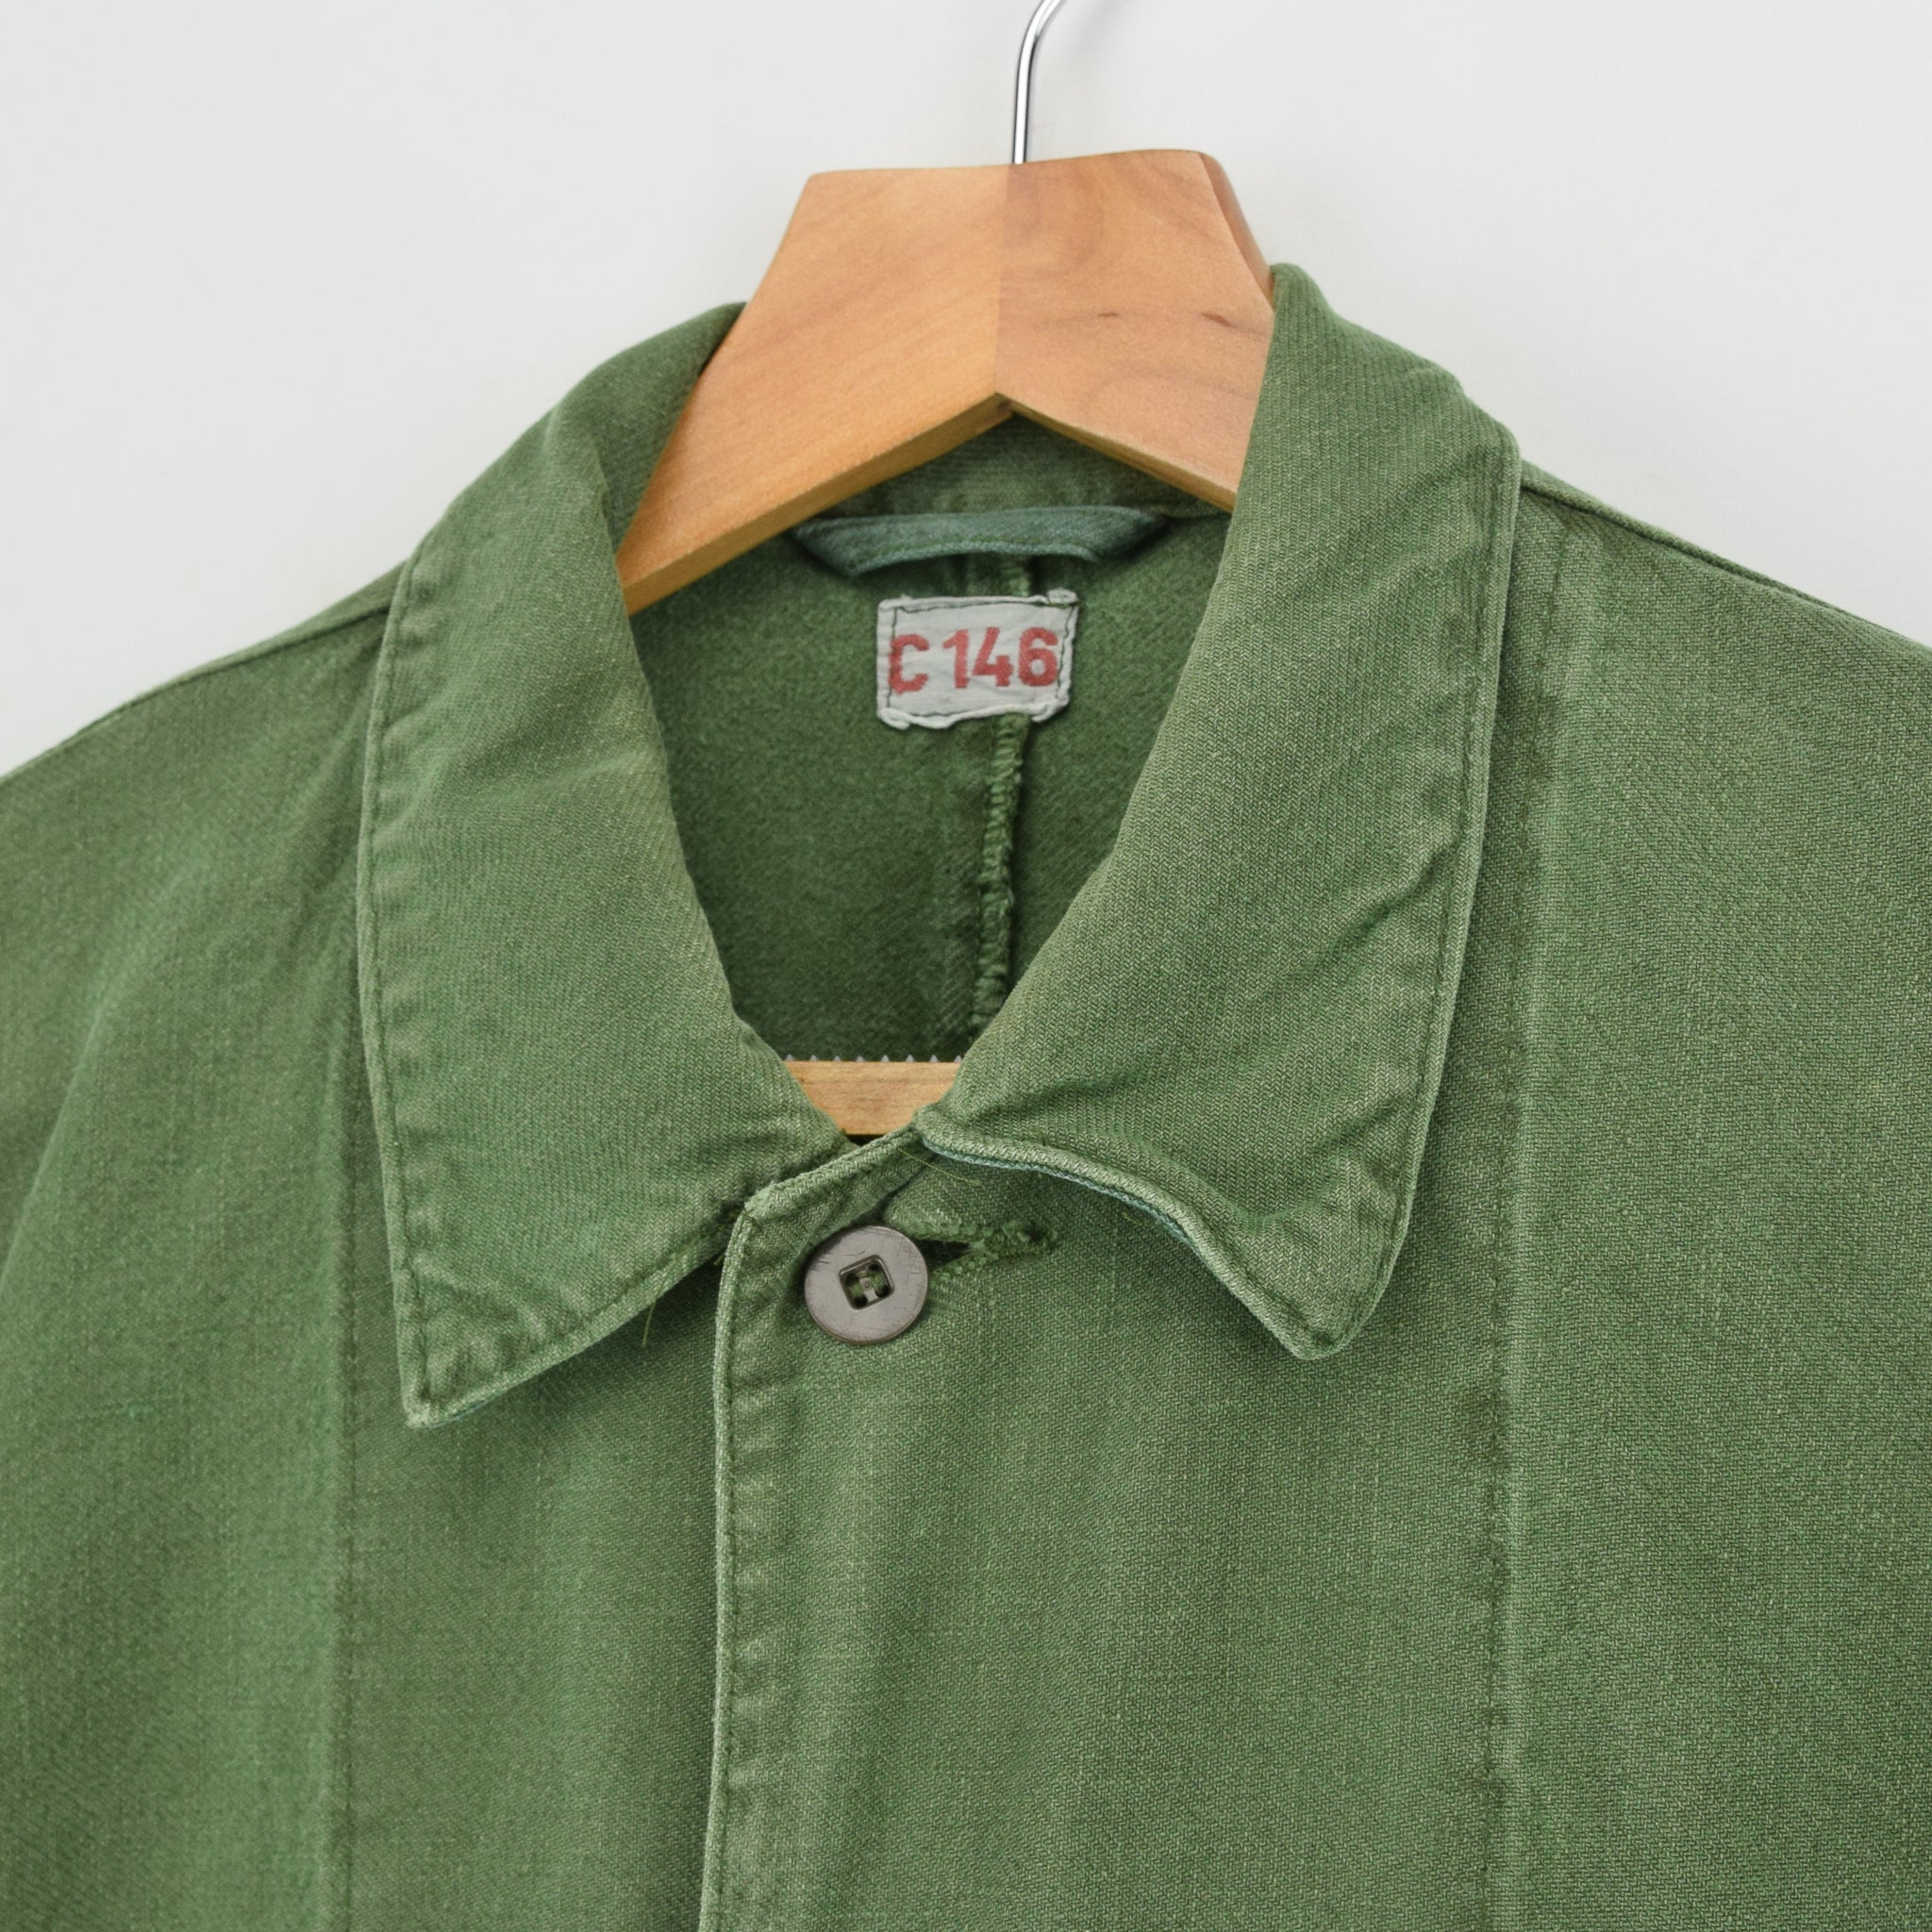 Vintage Swedish Worker Style Distressed Green Military Cotton Field Jacket M / L collar